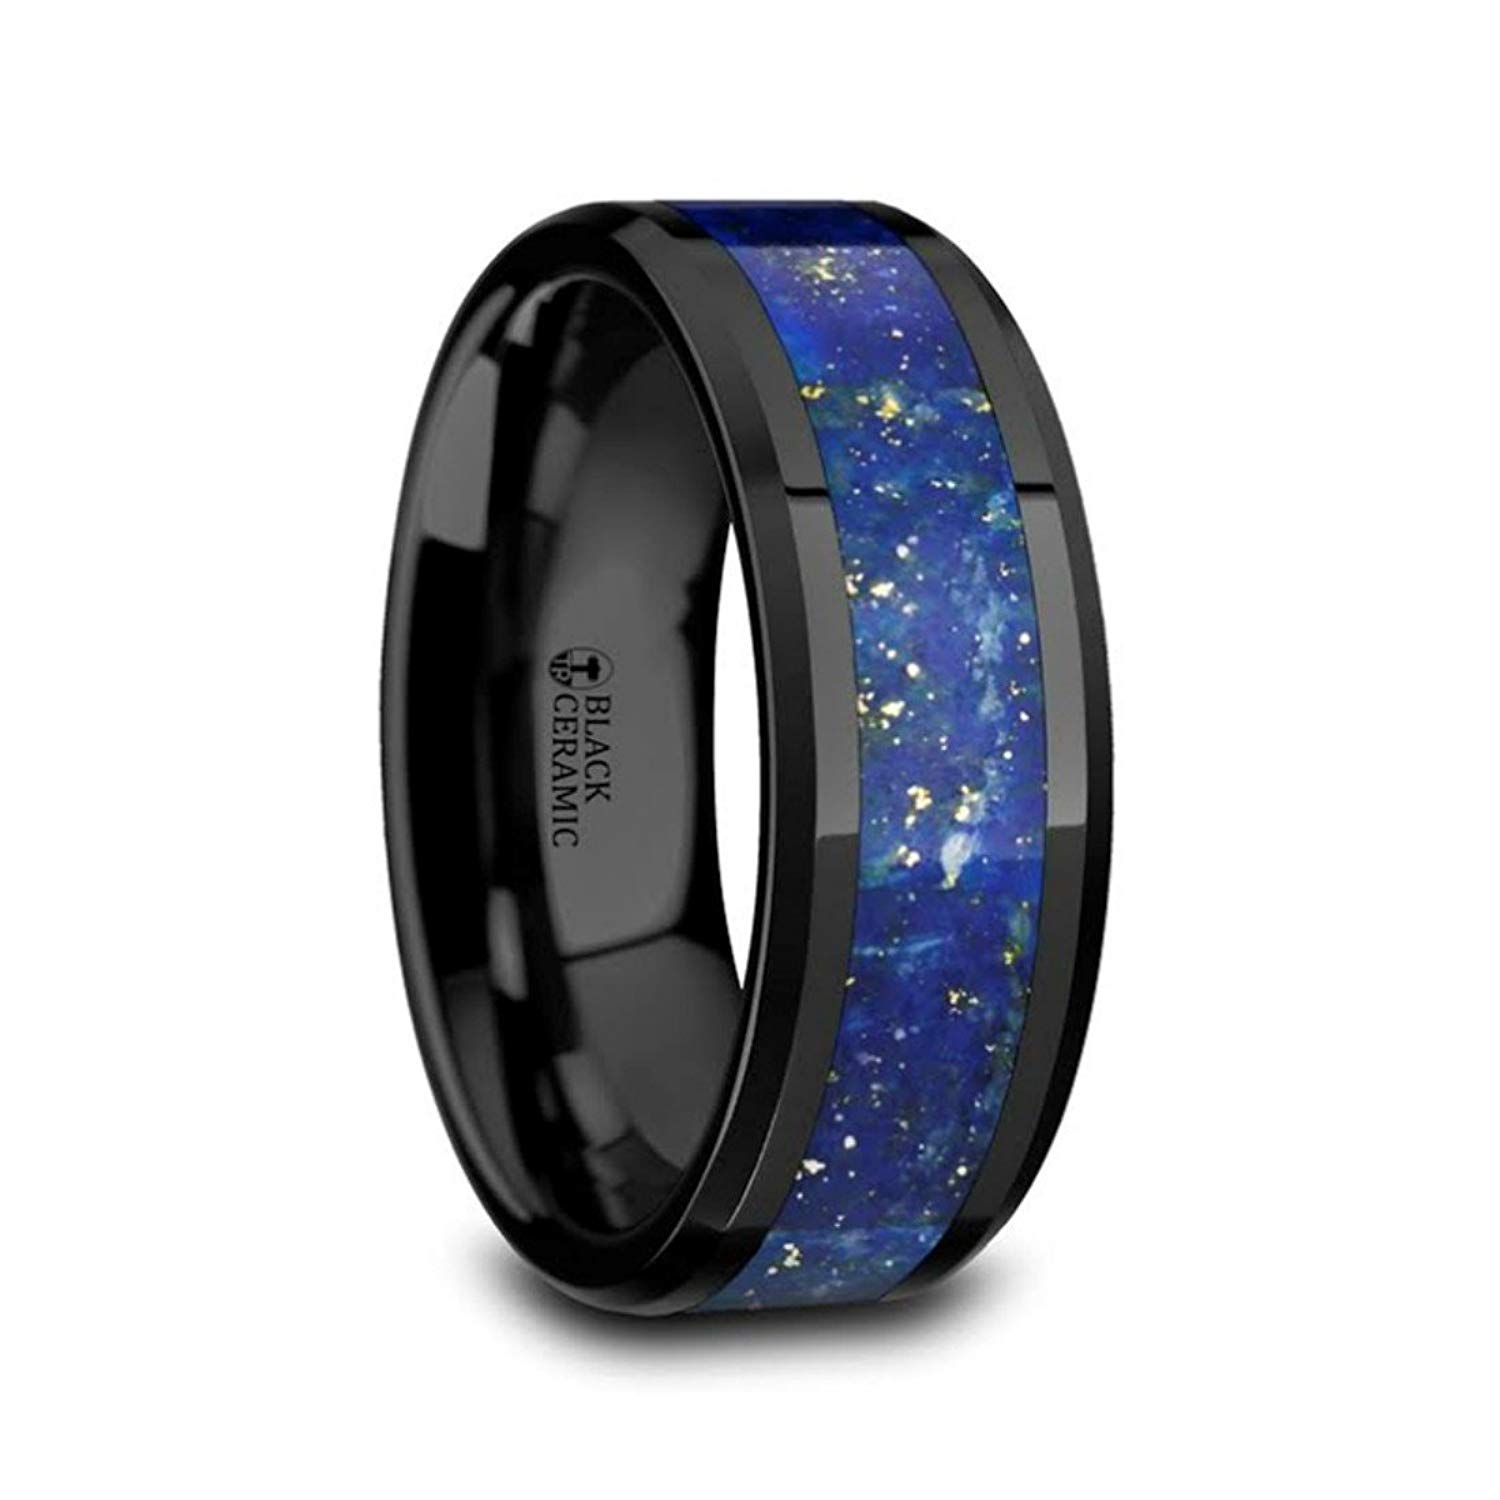 Thorsten Black Panther Custom Design Flat Black Tungsten Ring 12mm Wide Wedding Band from Roy Rose Jewelry